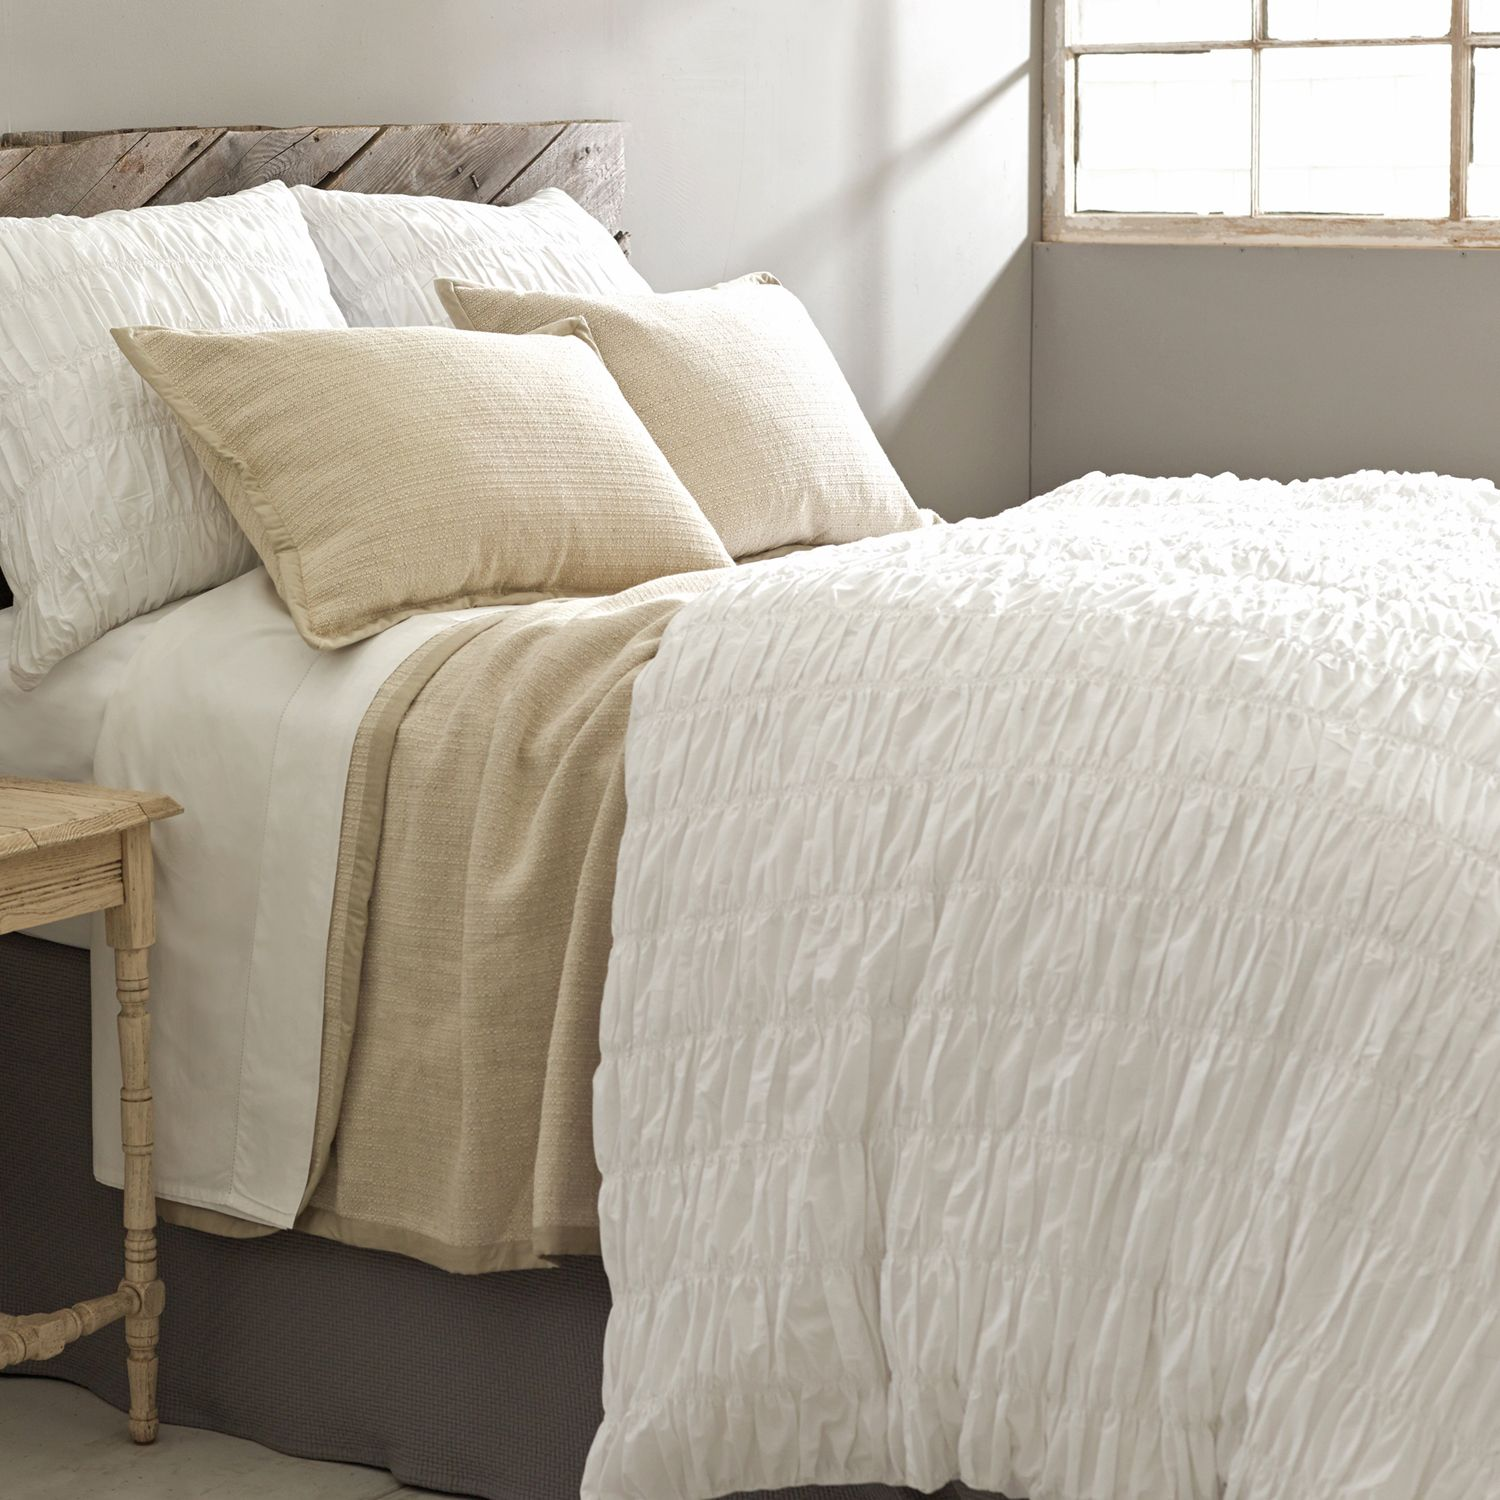 Pine Cone Hill Smocked White Duvet Cover Laylagrayce Lgturns10